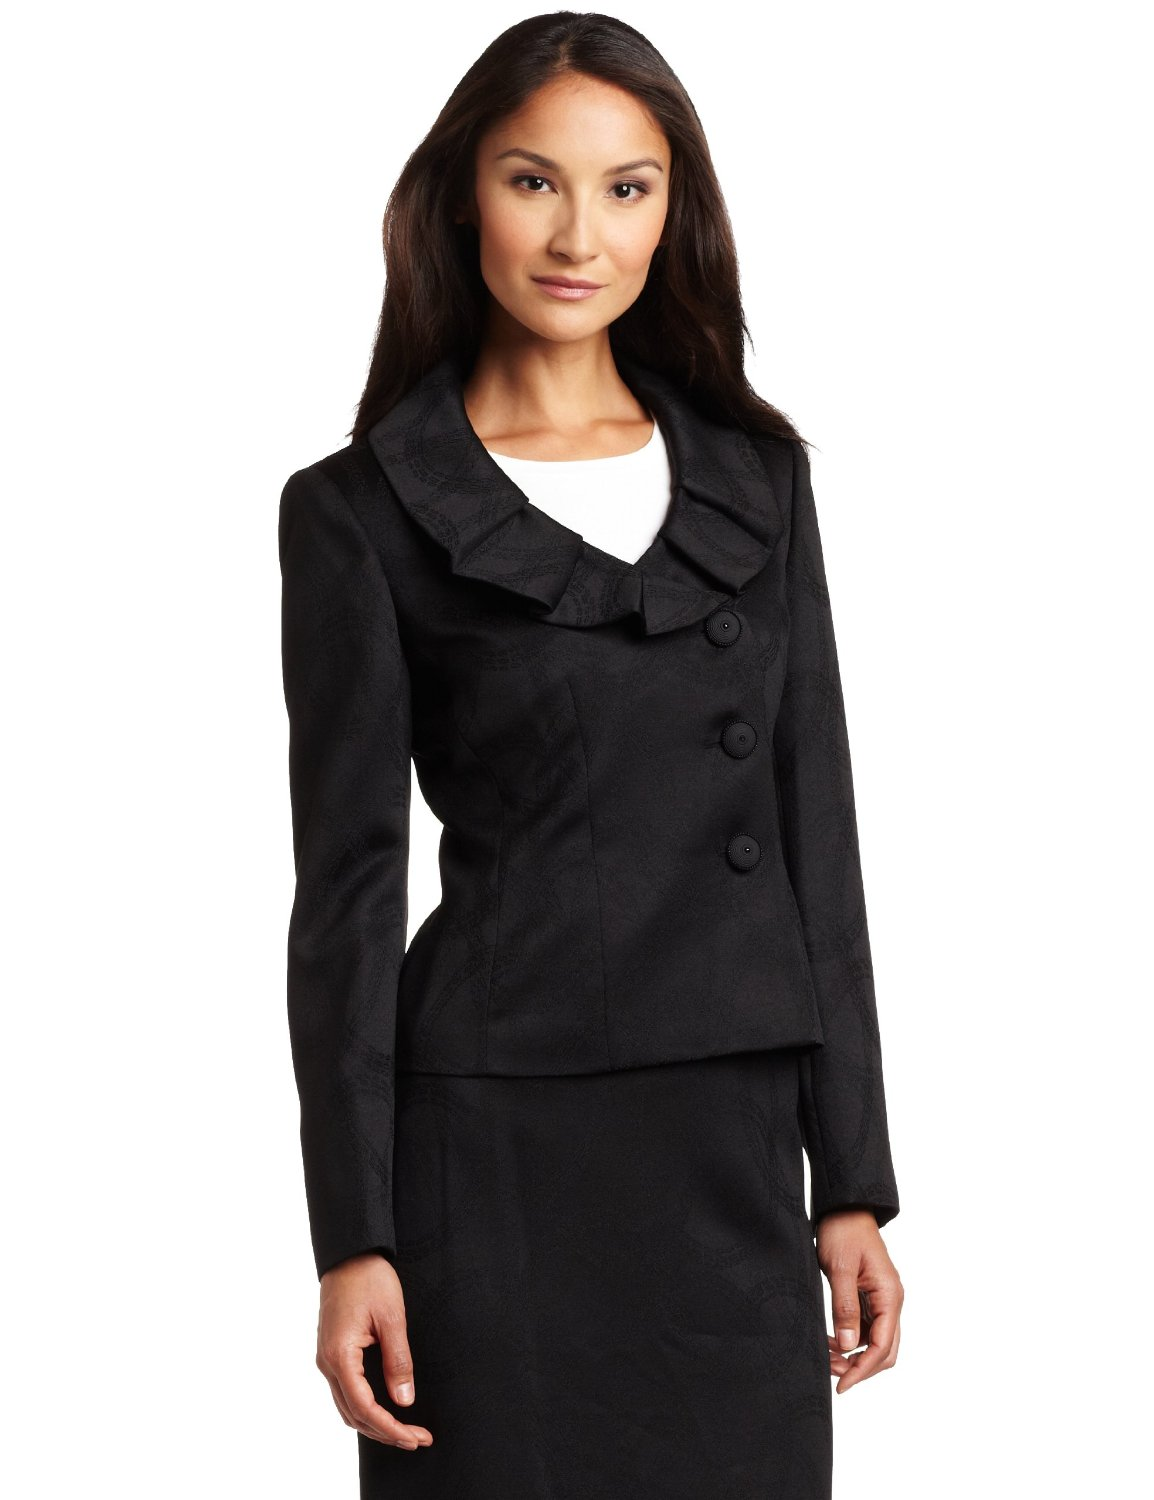 Lastest Women39s Business Casual Dress  Business Casual Attire  Women